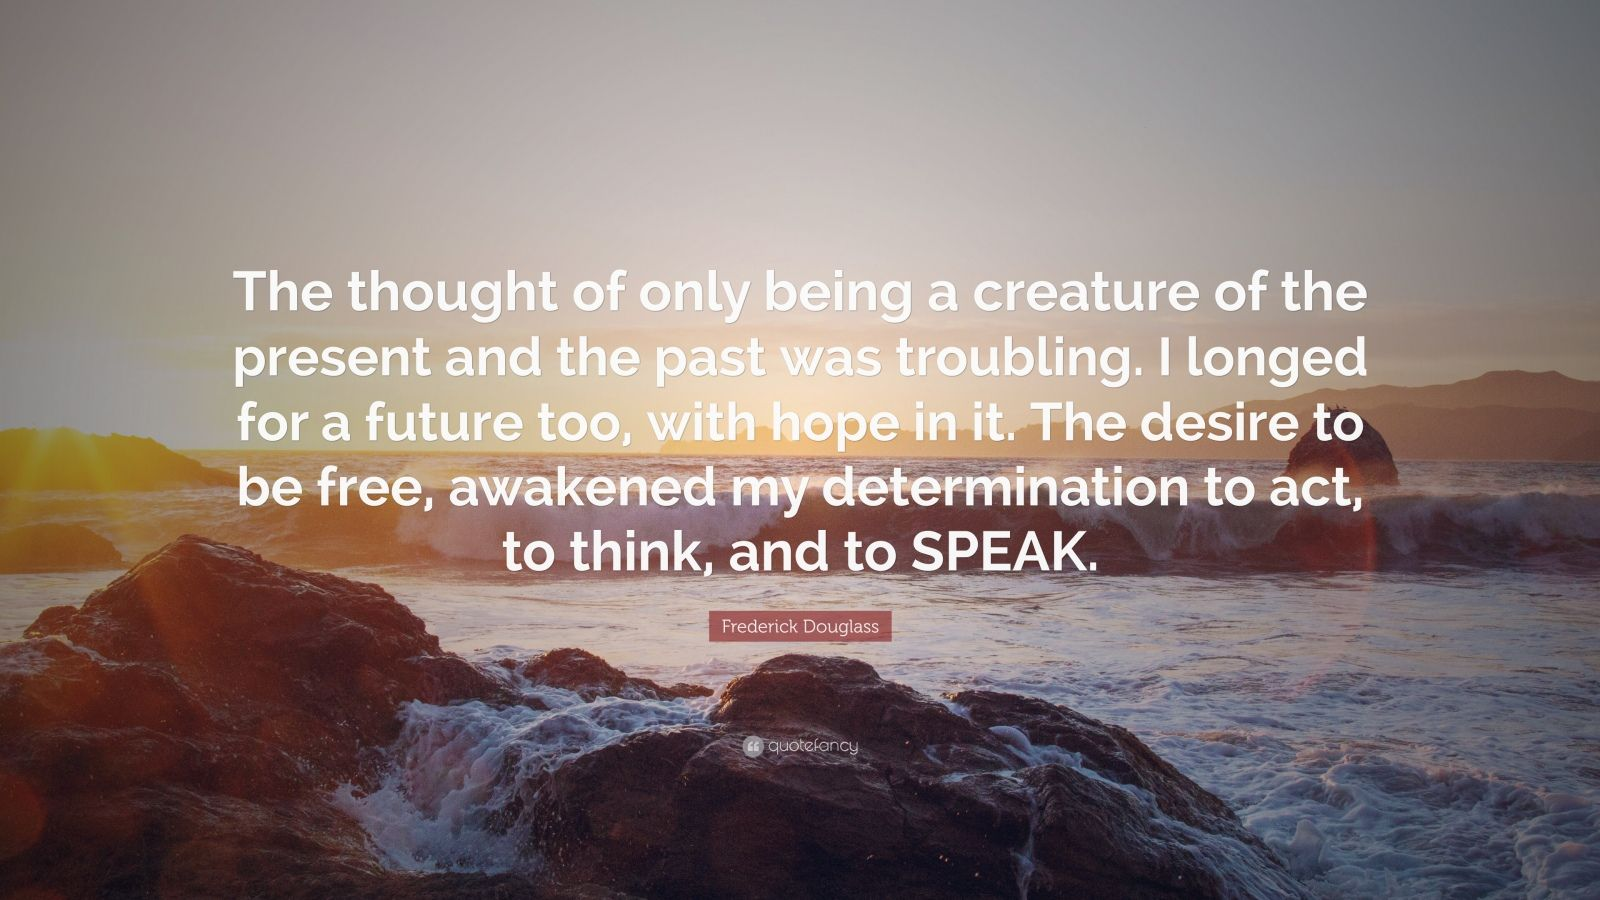 """Frederick Douglass Quote: """"The thought of only being a creature of the present and the past was troubling. I longed for a future too, with hope in it. The desire to be free, awakened my determination to act, to think, and to SPEAK."""""""